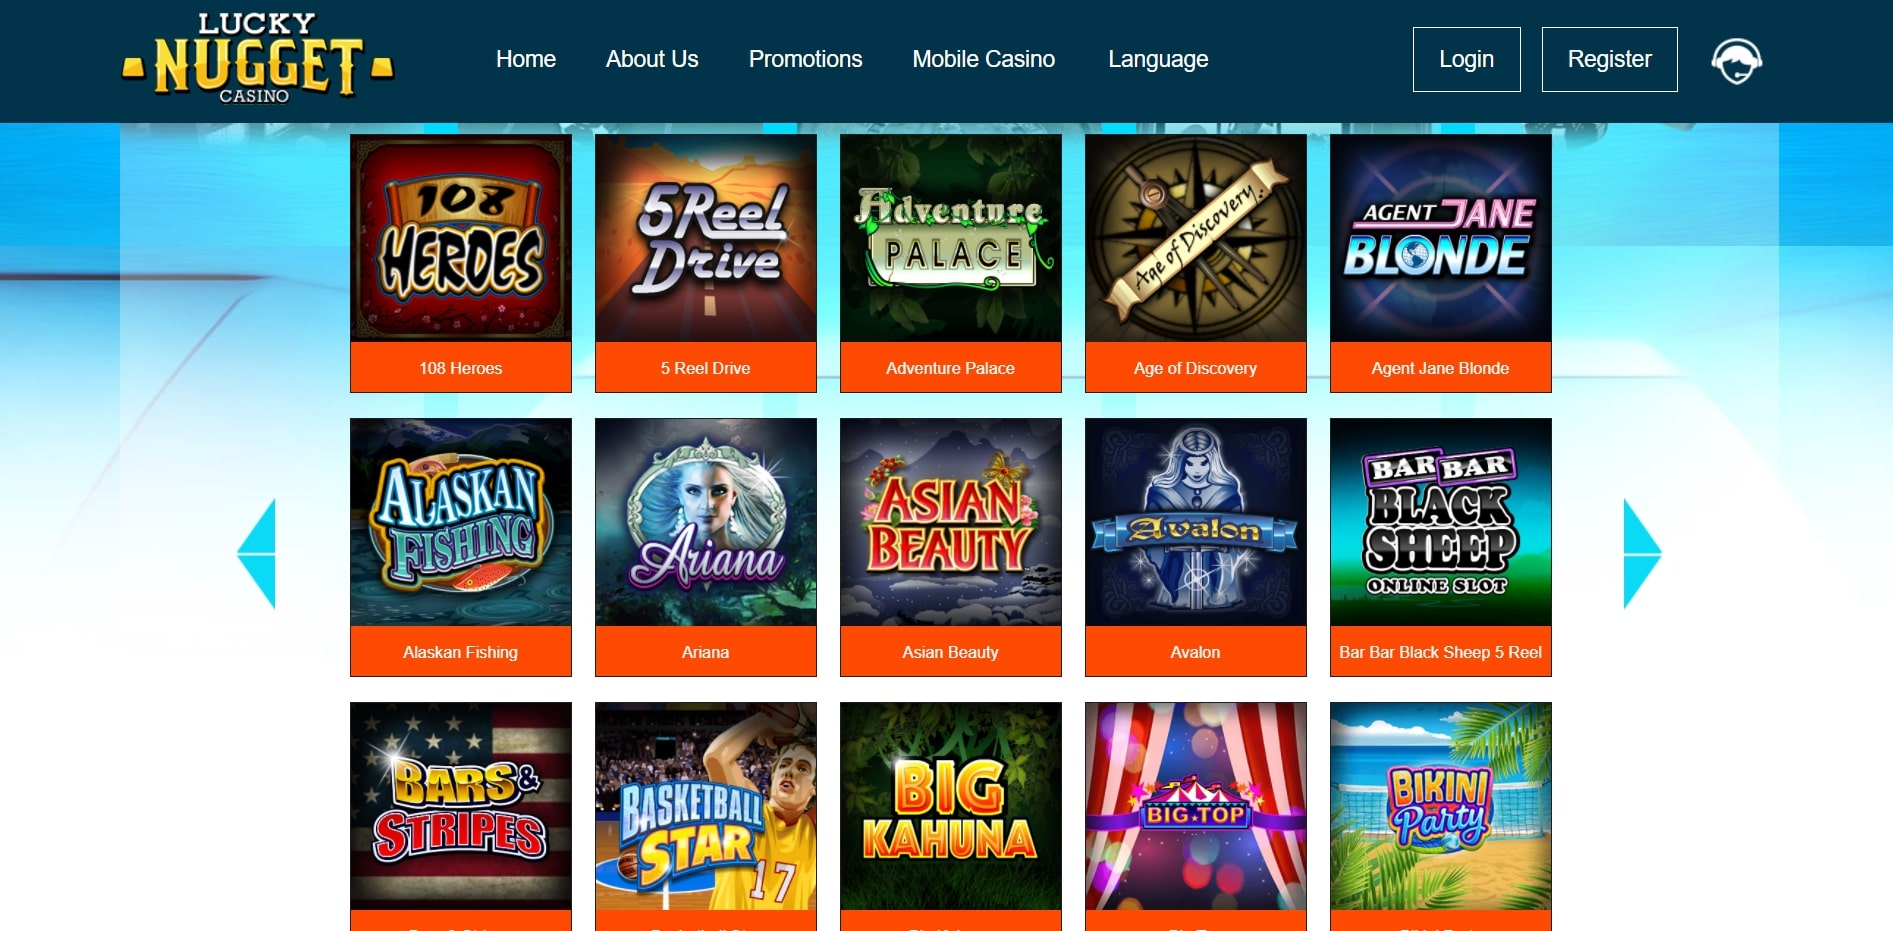 Lucky Nugget Casino US Games